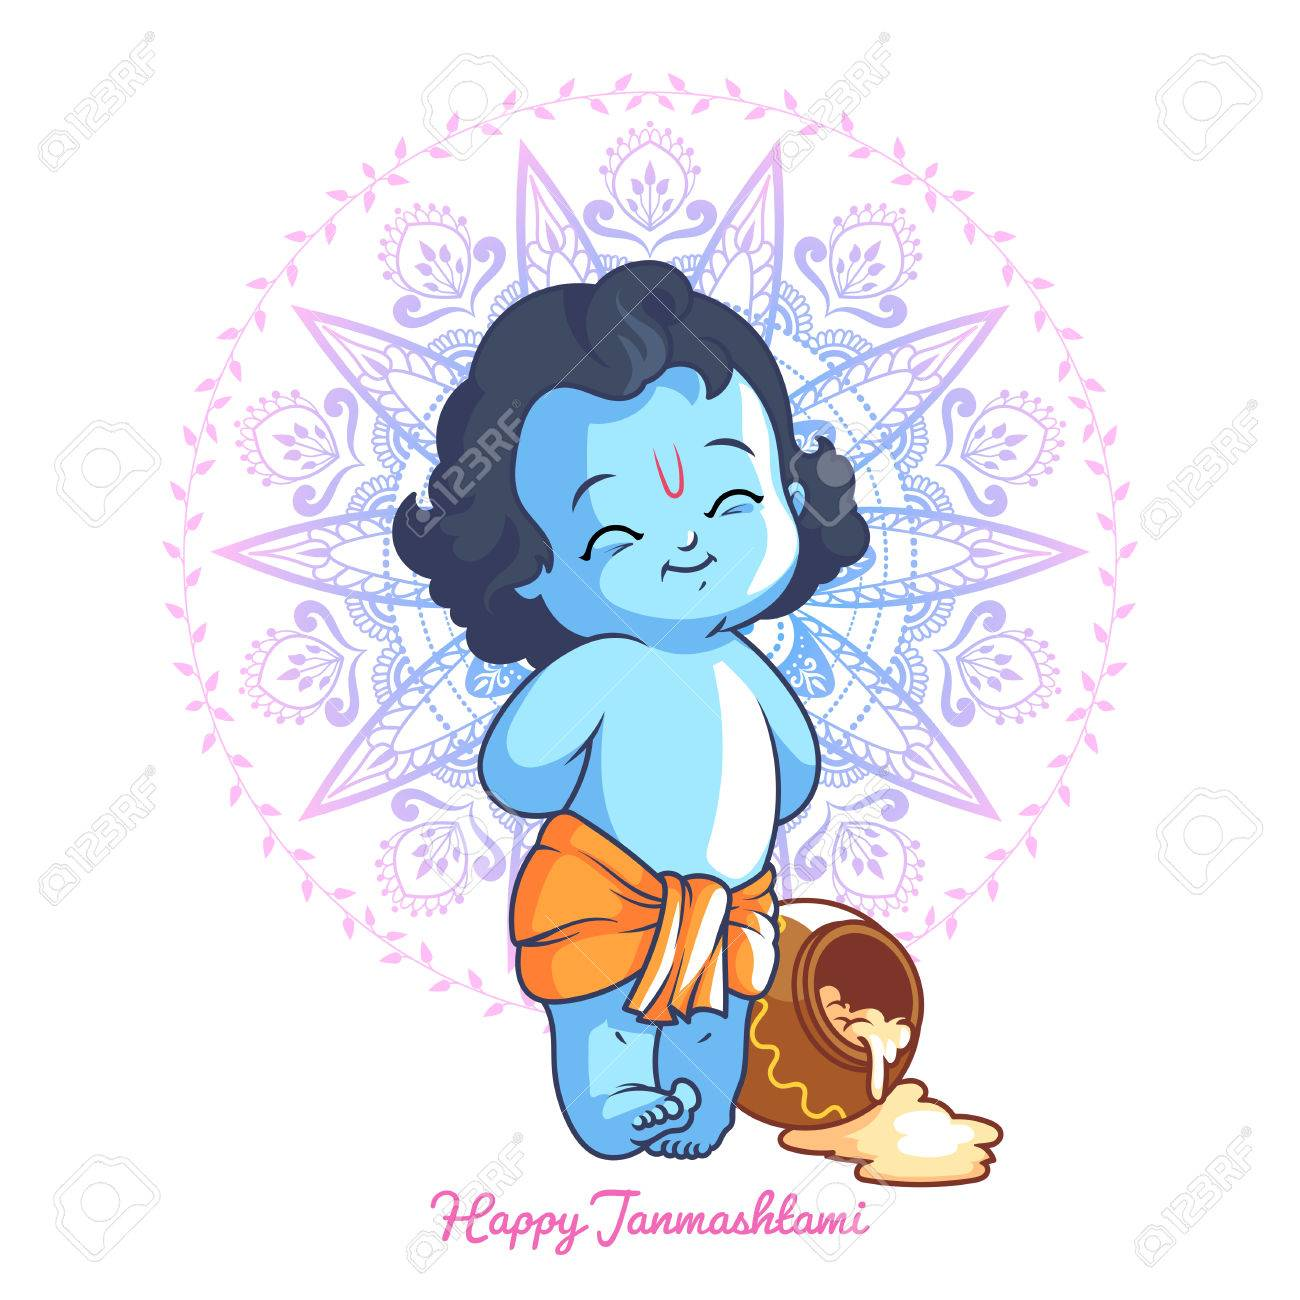 Little Cartoon Krishna With A Pot Of Butter Greeting Card For